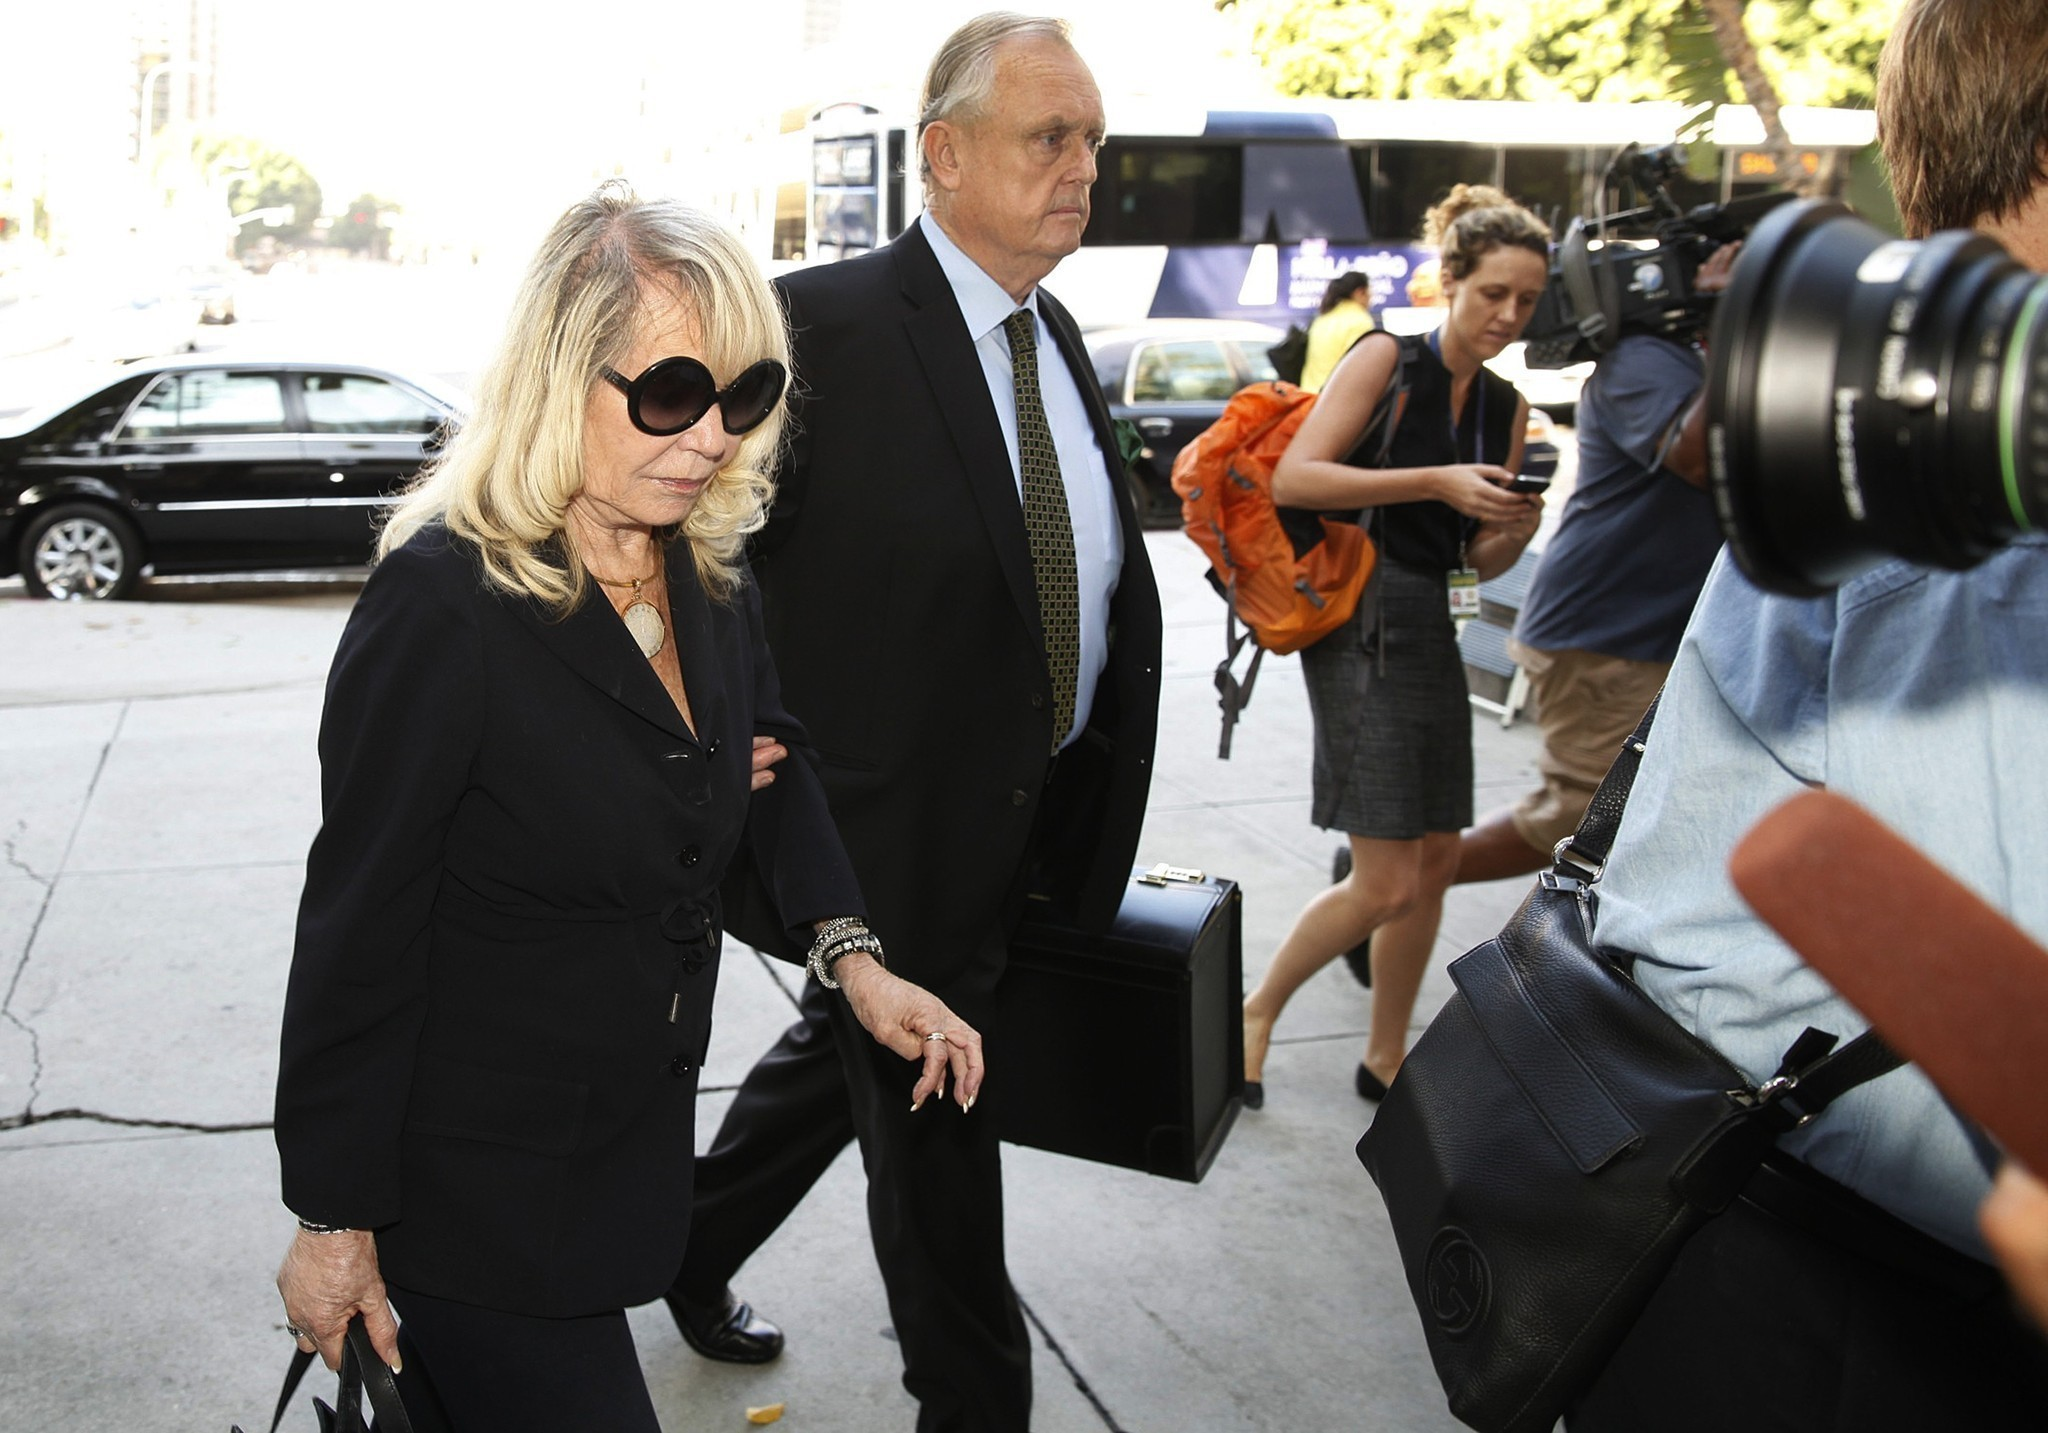 Donald Sterling to Shelly: 'Get away from me, you pig!'